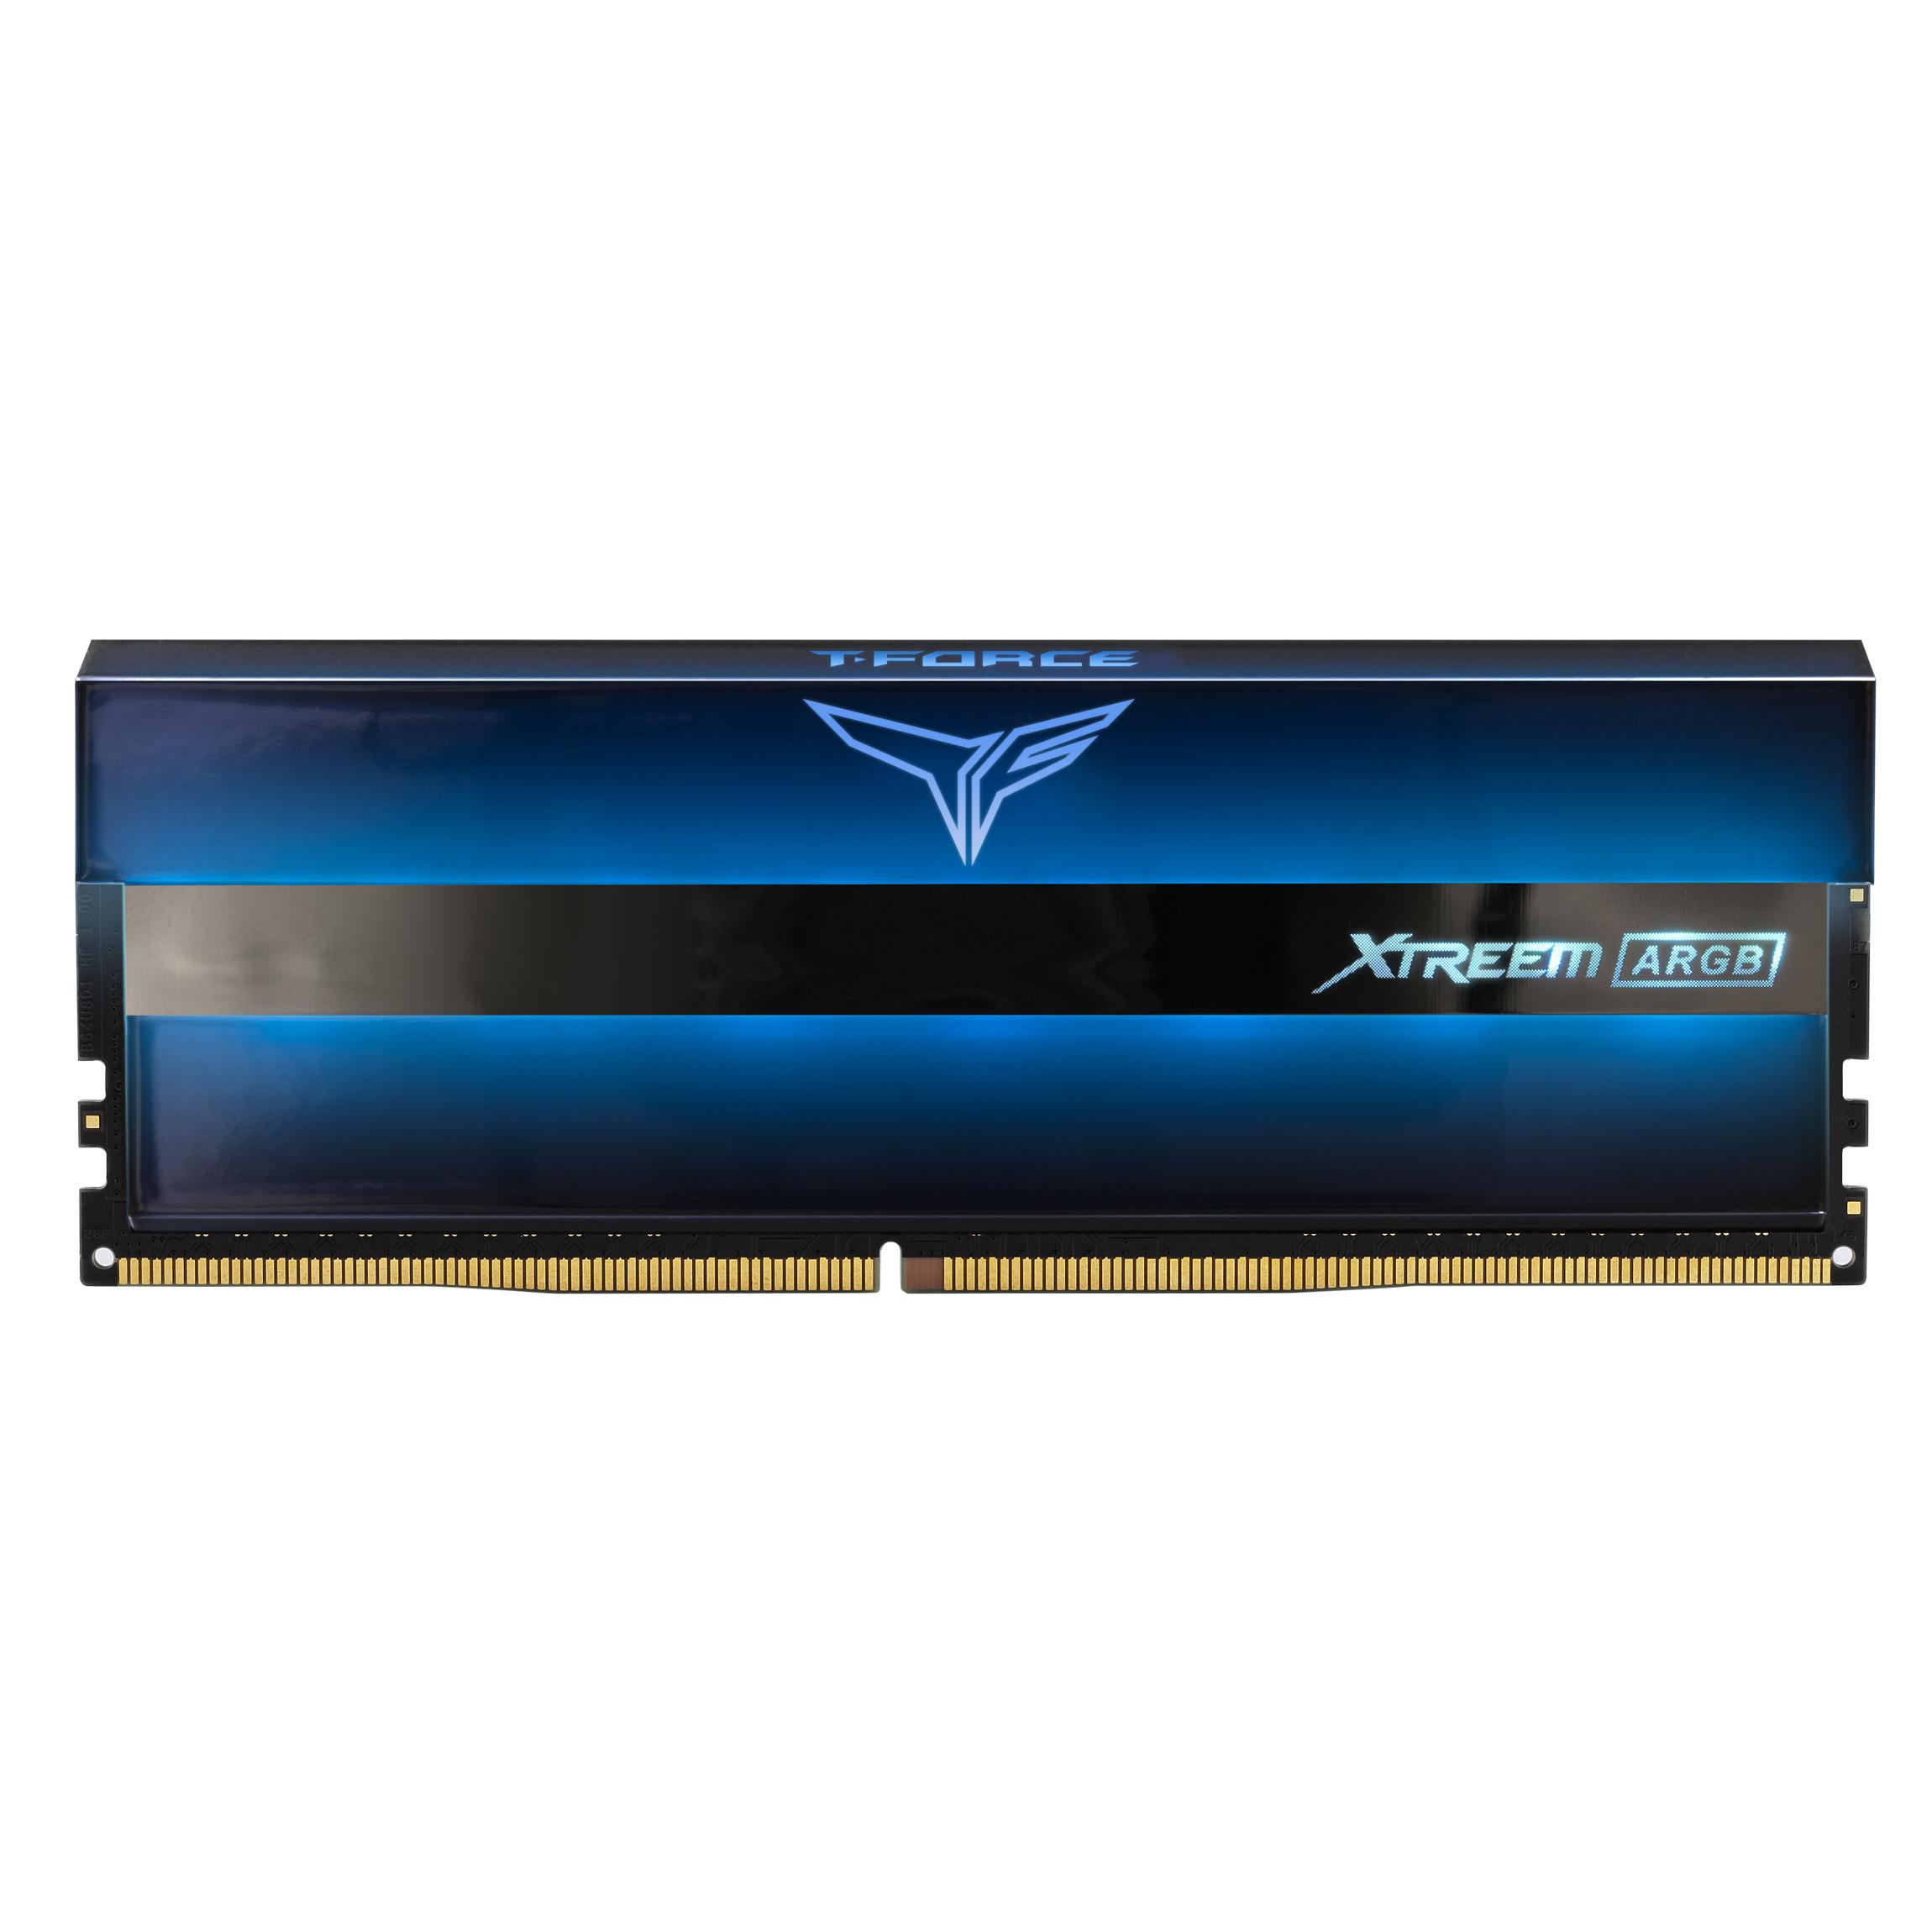 Памет Team Group T-Force XTREEM ARGB, DDR4, 16GB (2x8GB), 3600MHz, CL18-22-22-42, 1.35V-4